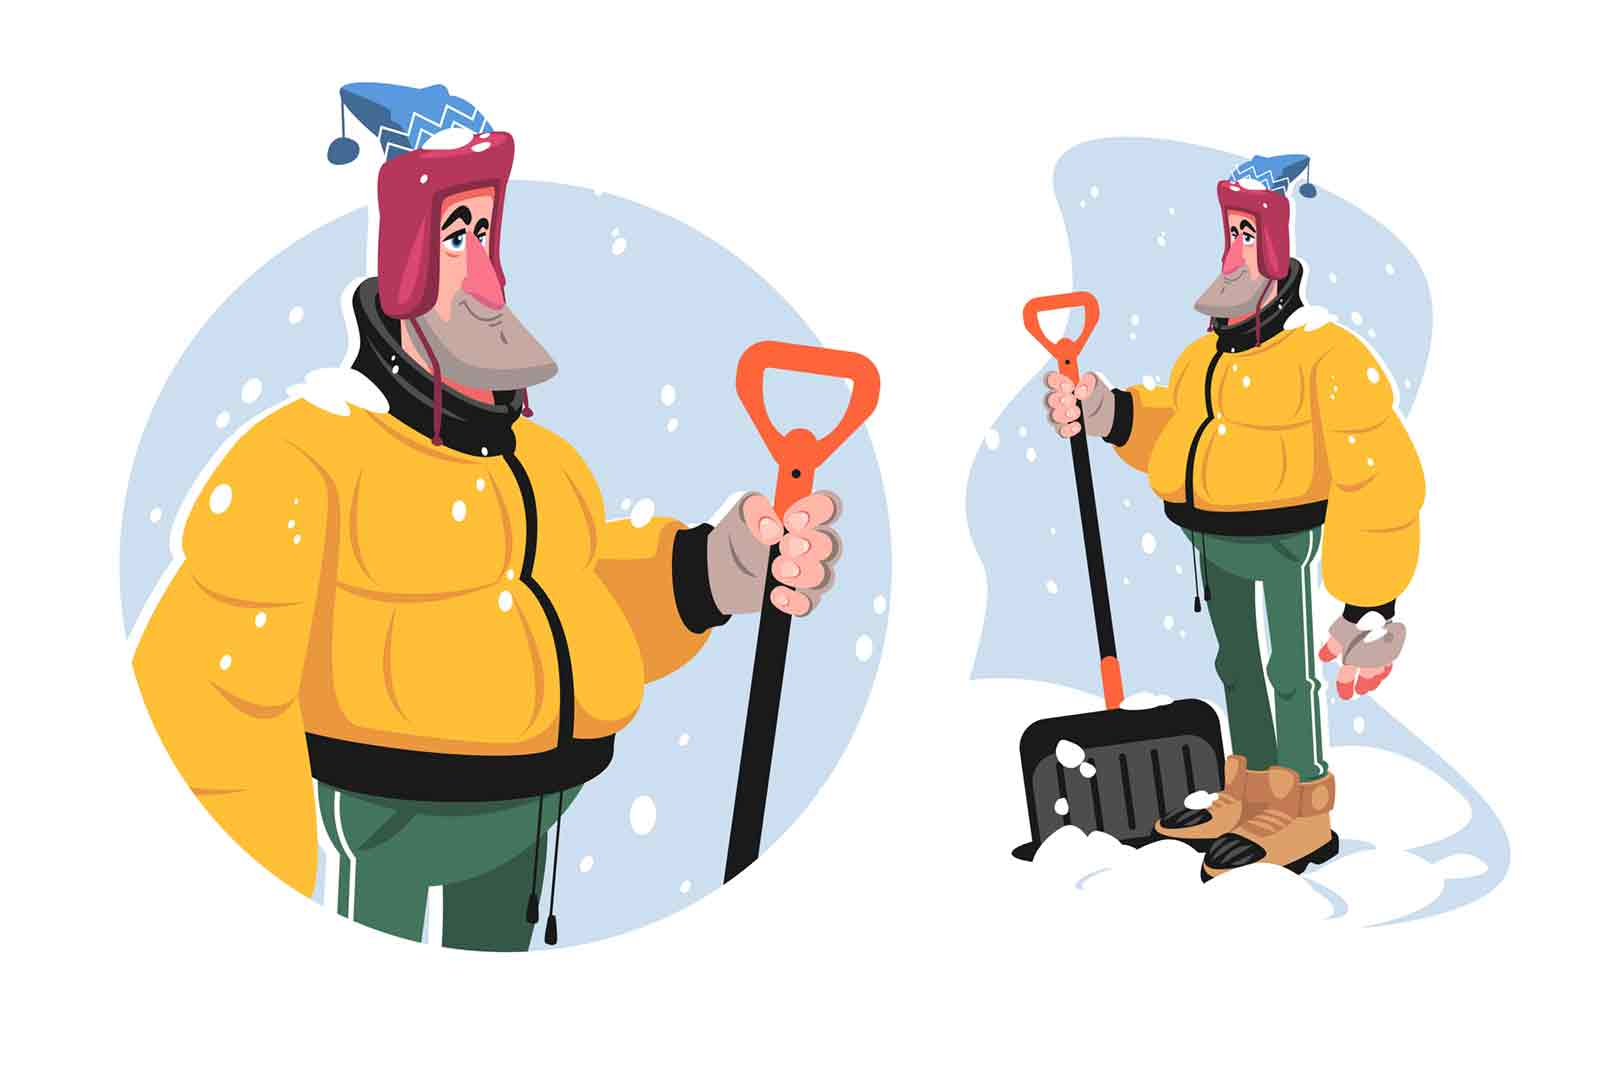 Man with shovel tool vector illustration. Adult man in winter outfit ready to remove snow flat style. Snowy weather and cold. Winter and outdoors activity concept. Isolated on white background